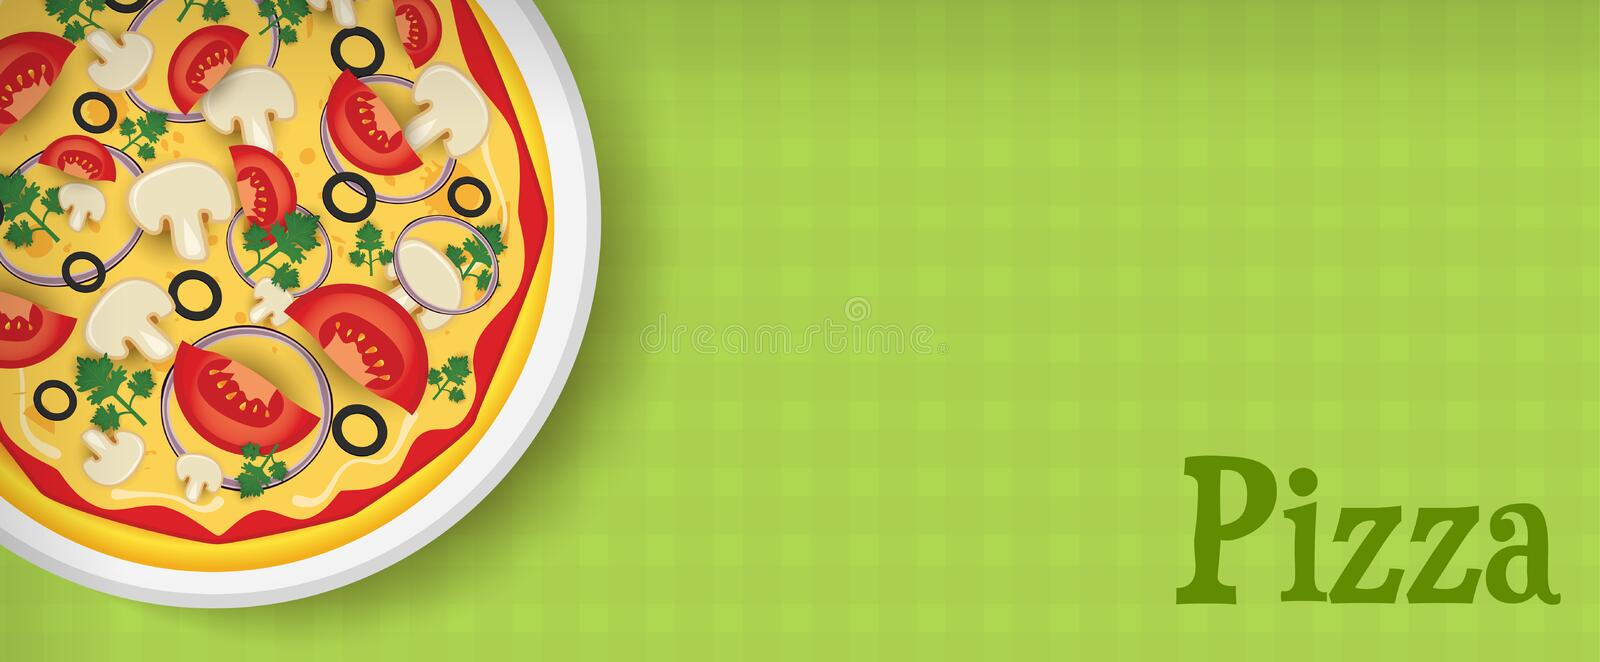 Banner met pizza stock illustratie